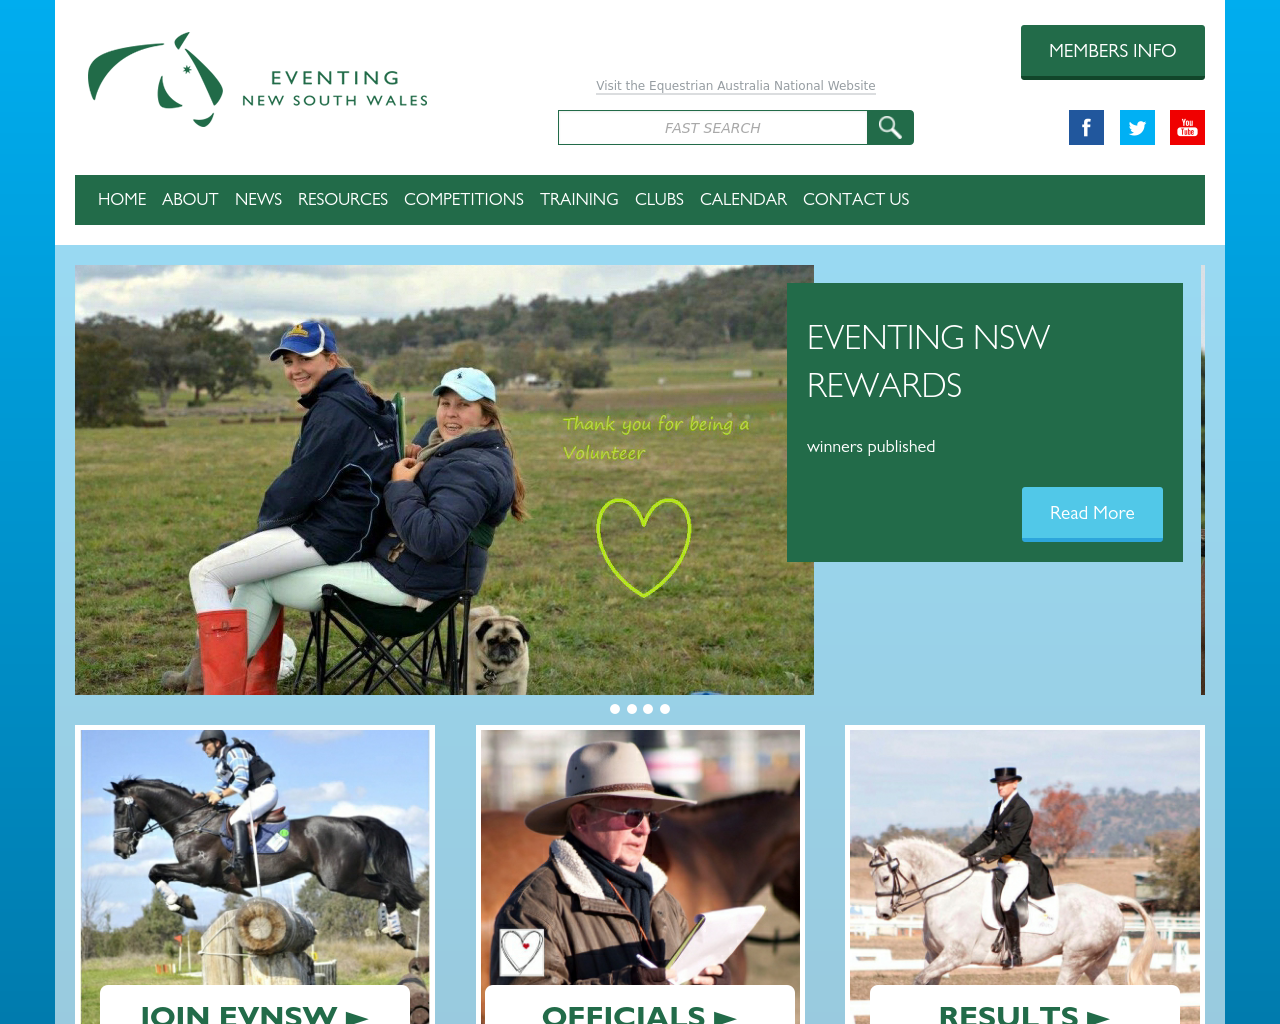 Eventing-New-South-Wales-Advertising-Reviews-Pricing